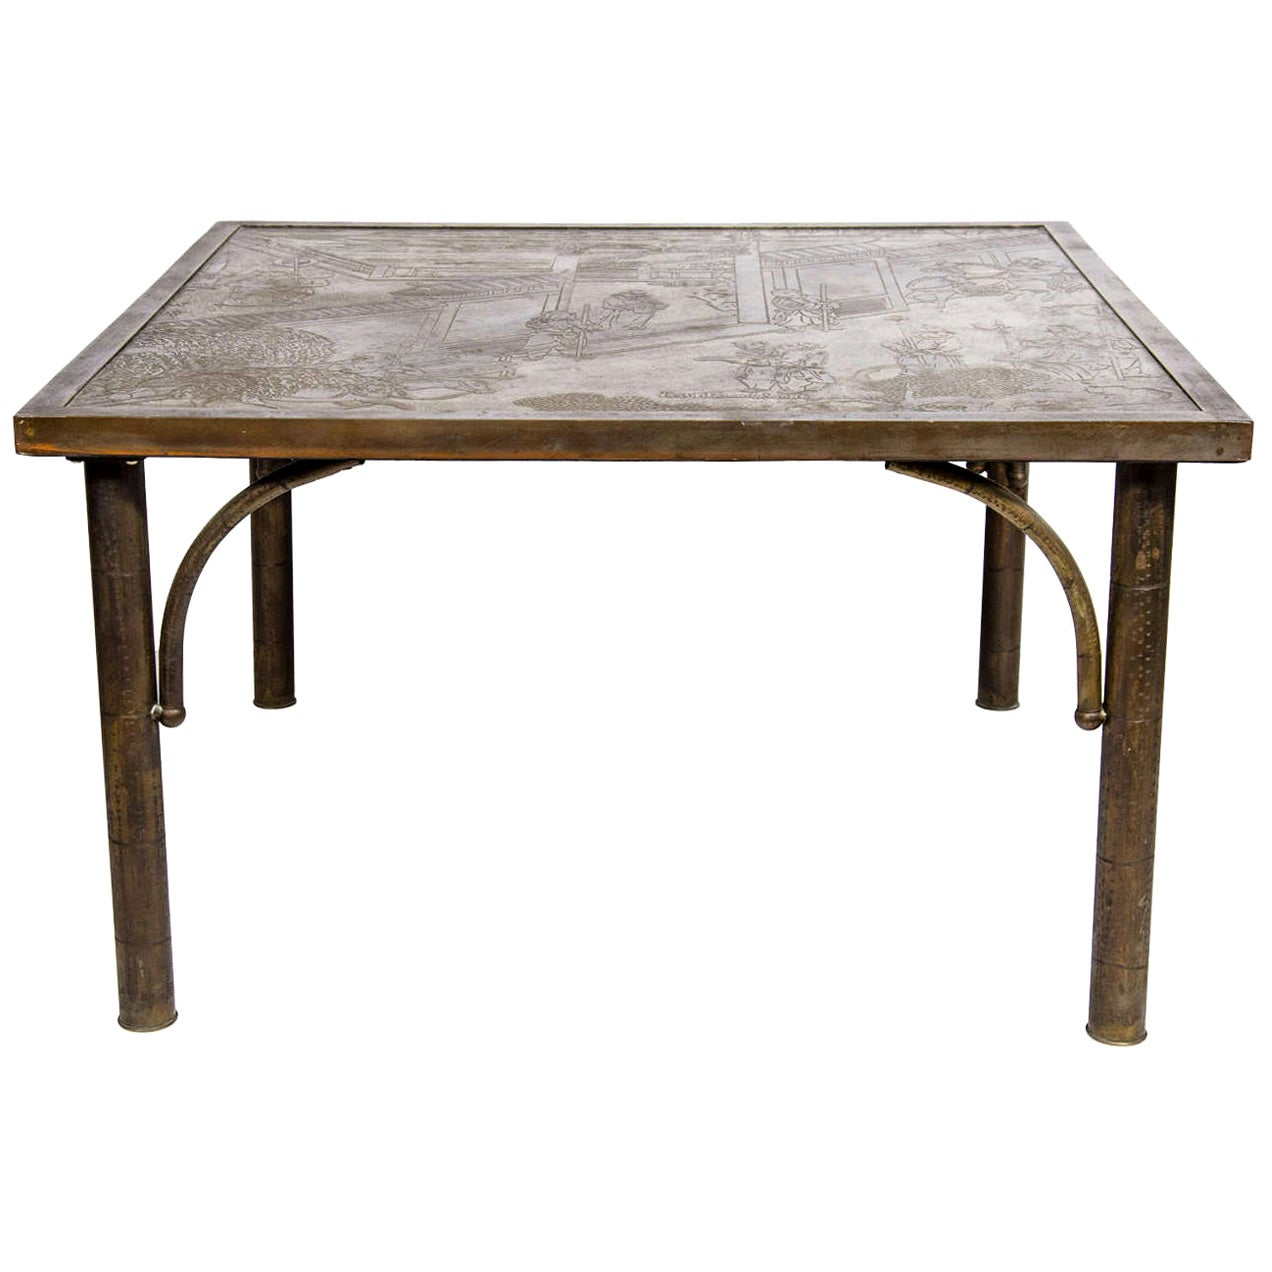 """Midcentury Acid Etched Cocktail """"Chan Series"""" Table by Philip and Kelvin LaVerne"""